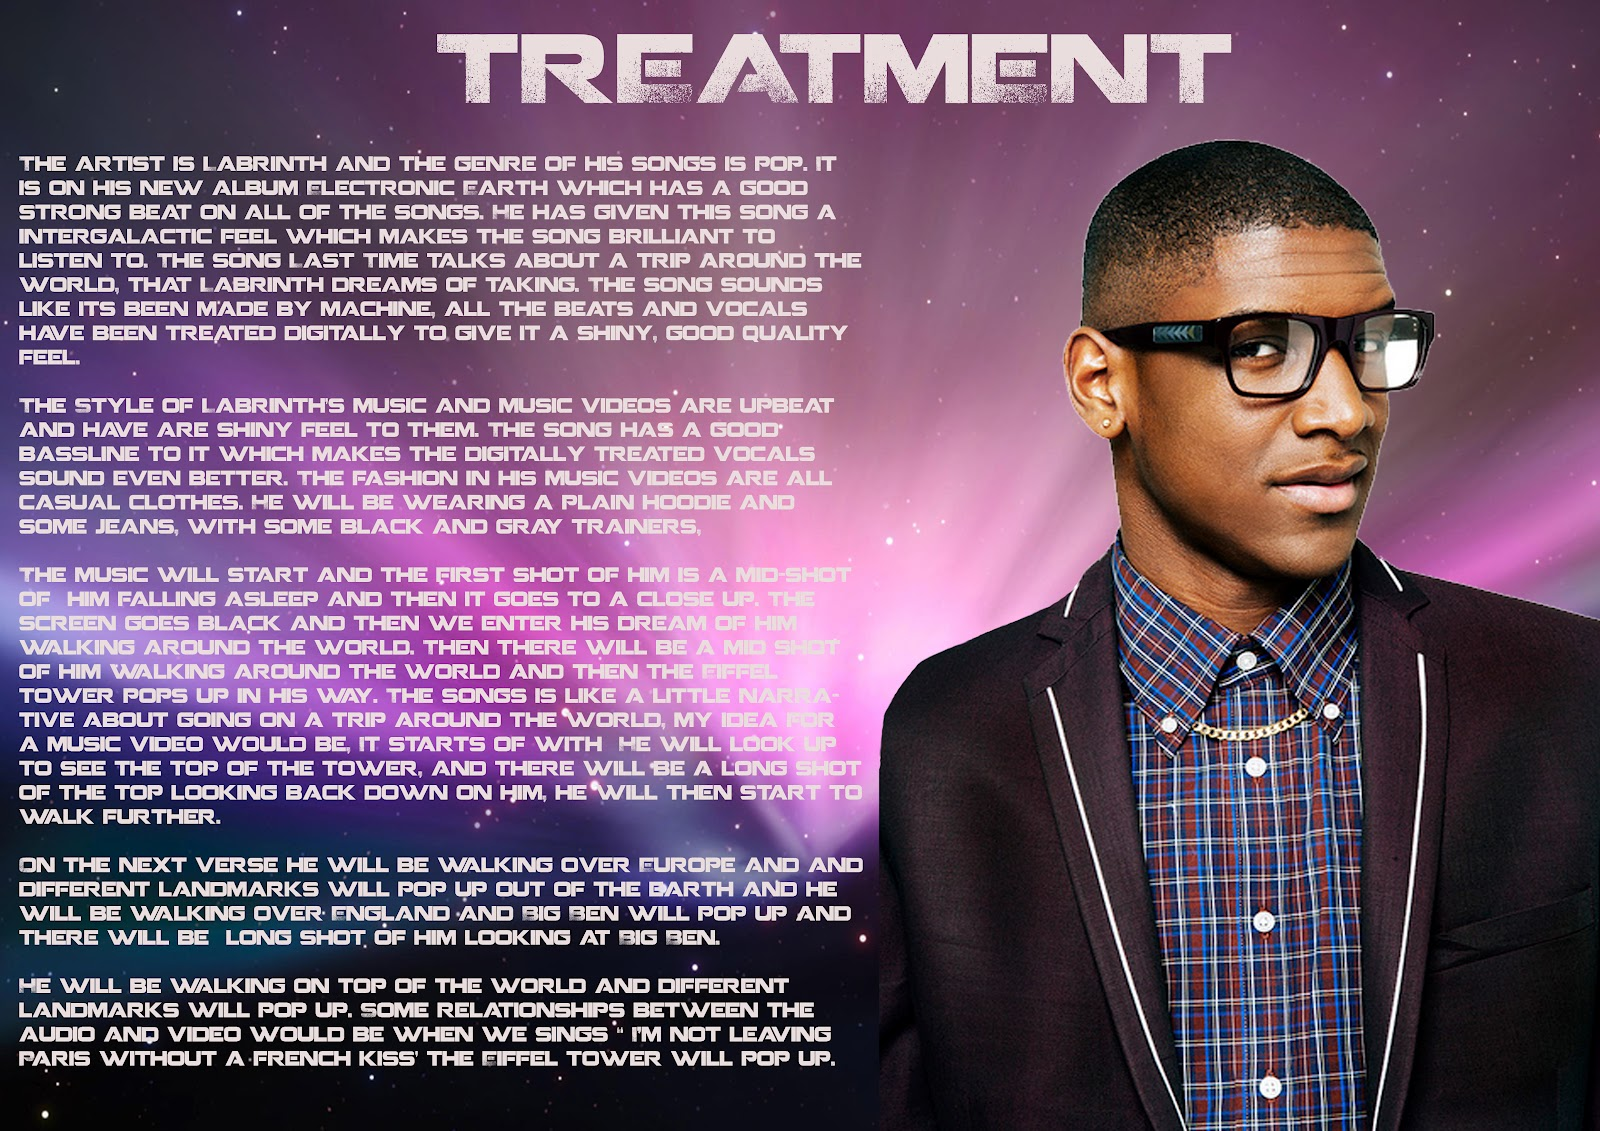 music video treatment Music video treatment template download posted on july 22, 2017 91 out of 100 based on 558 user ratings how to write music video treatments duration:.